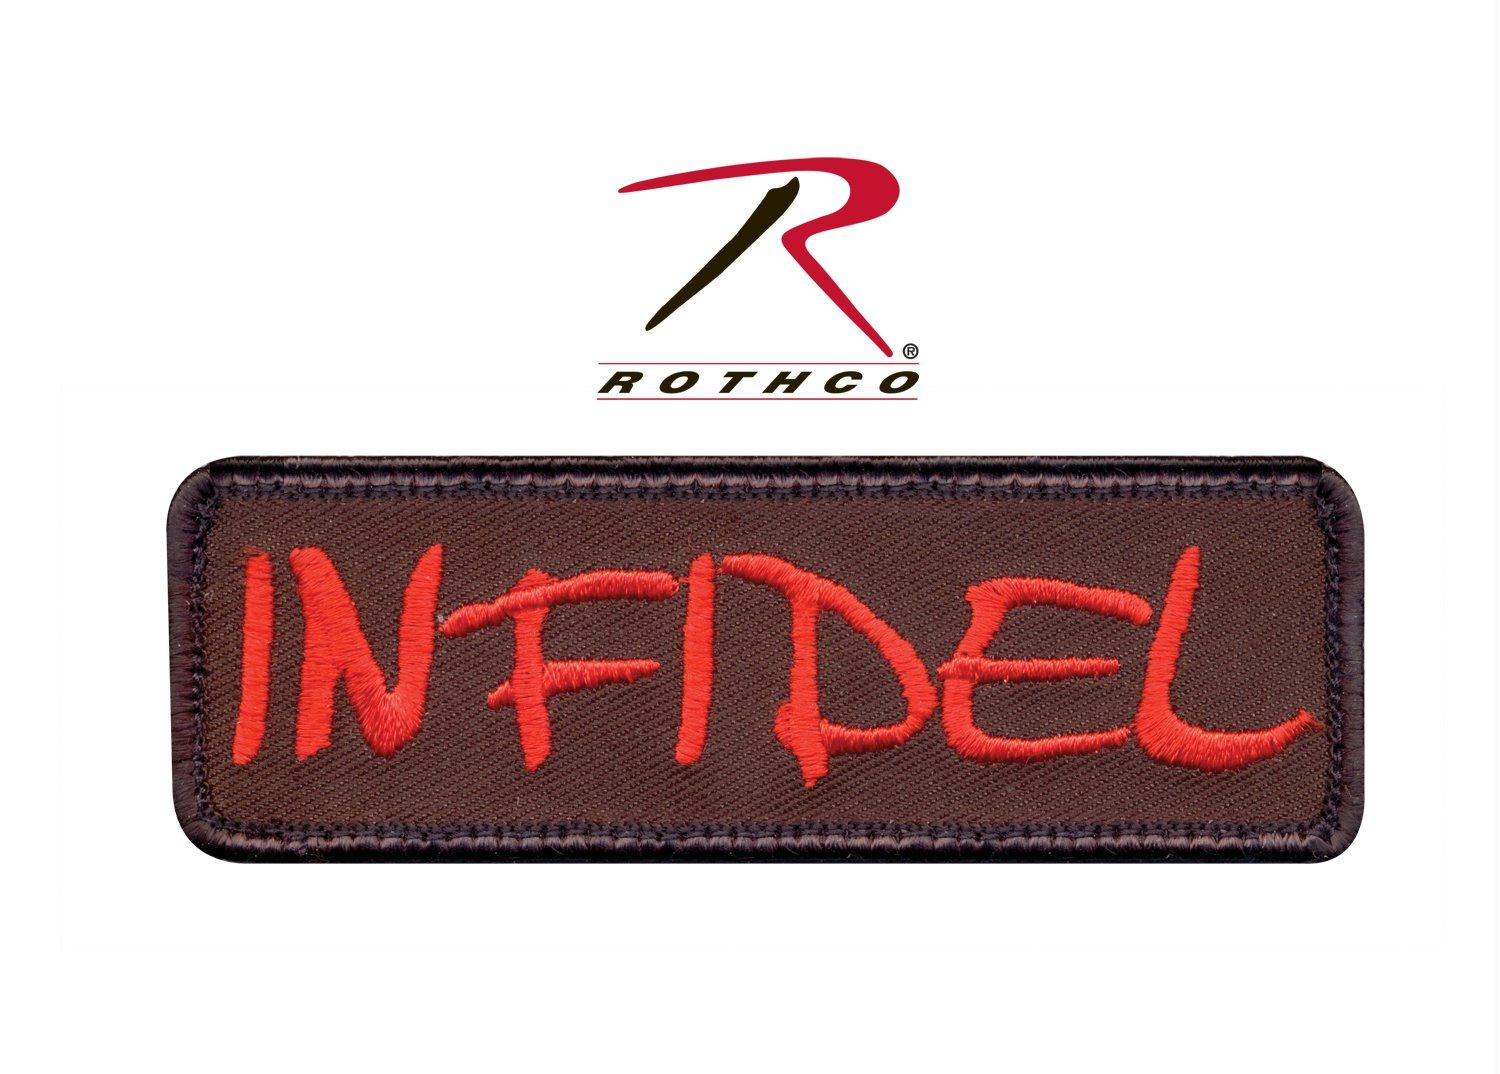 Rothco Infidel Morale Patch